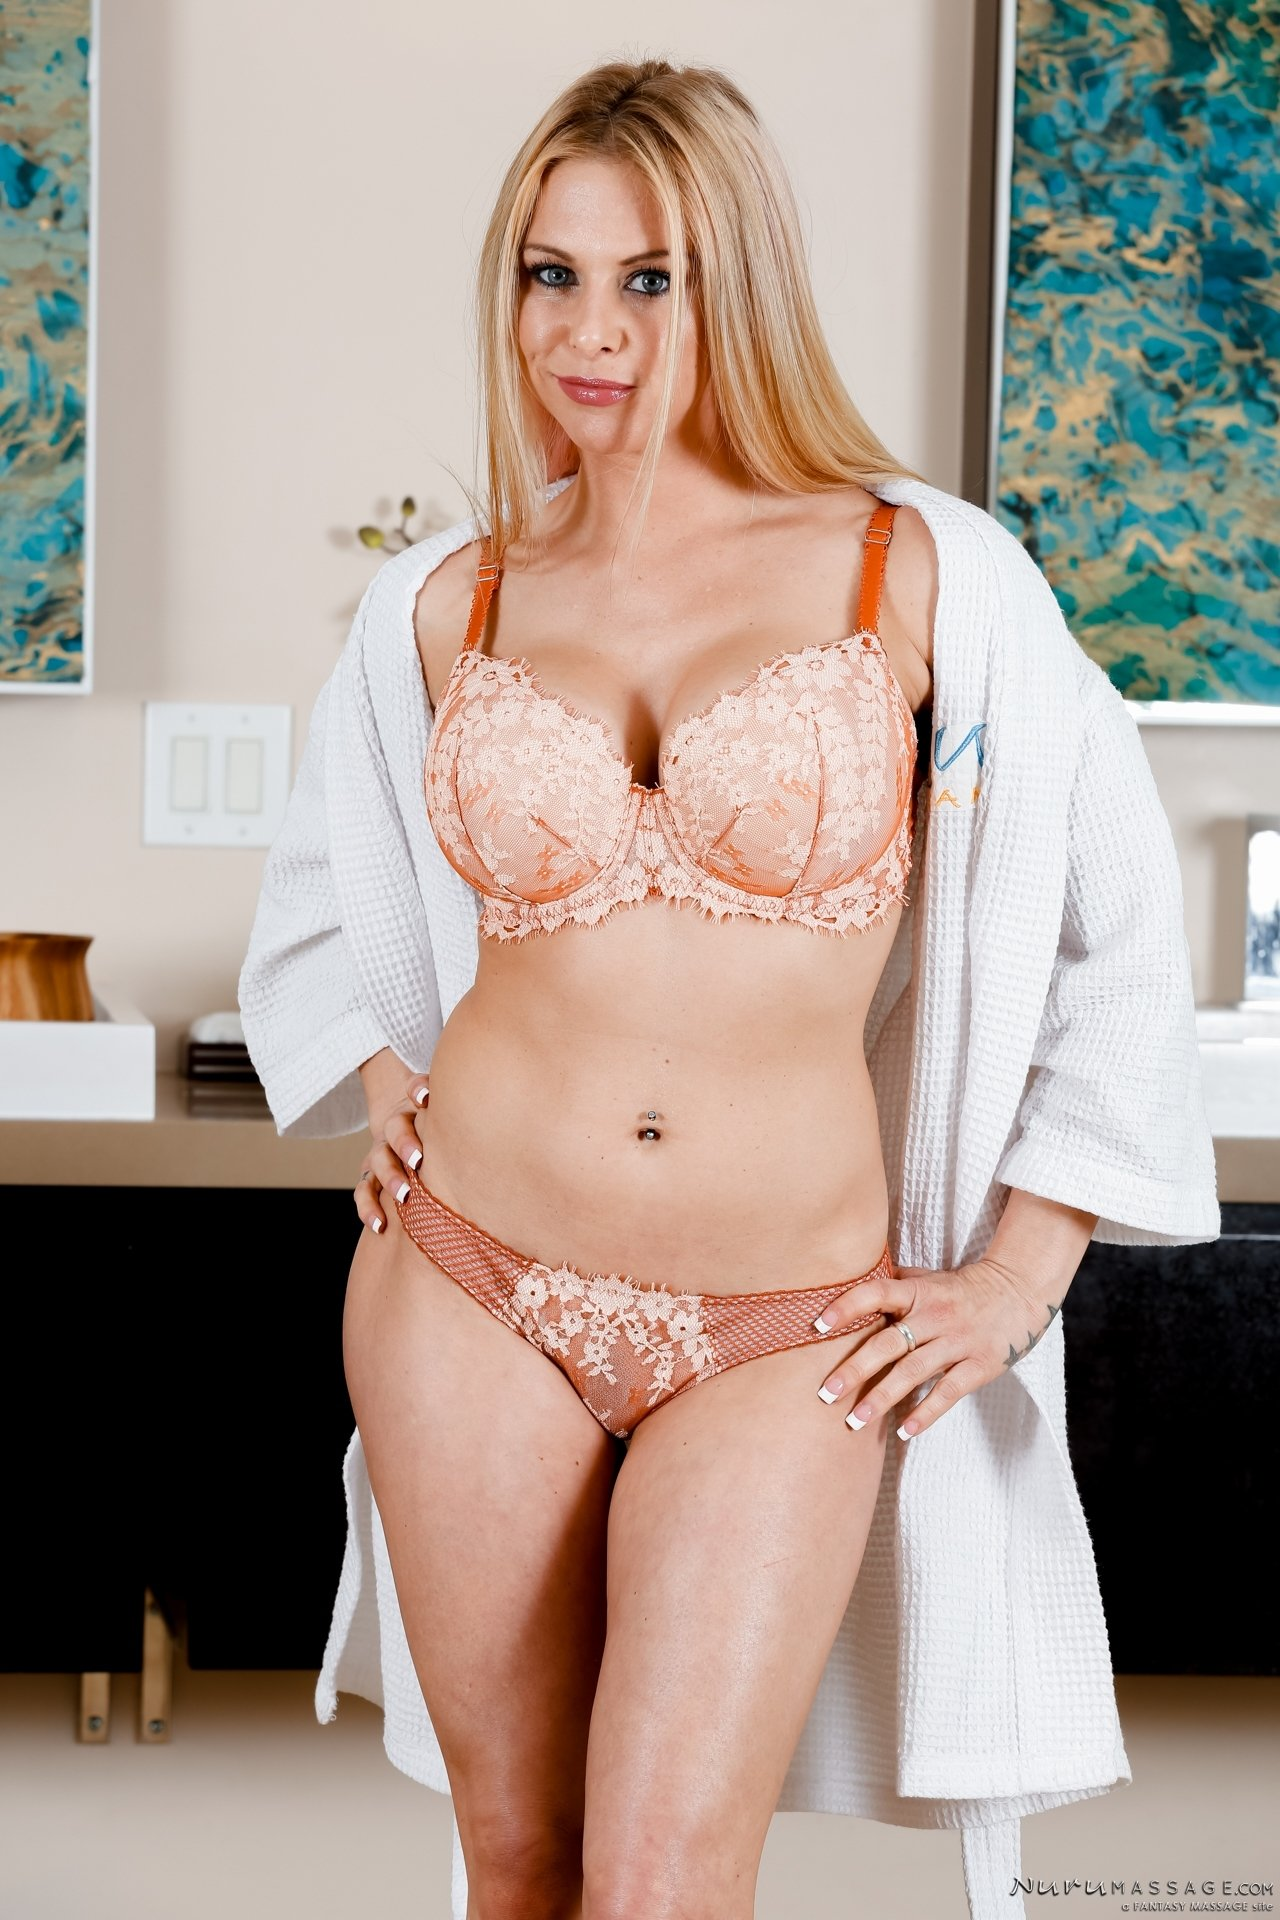 ADULT TIME Cardiogasm - Cherie DeVille Helps You Get Shredded